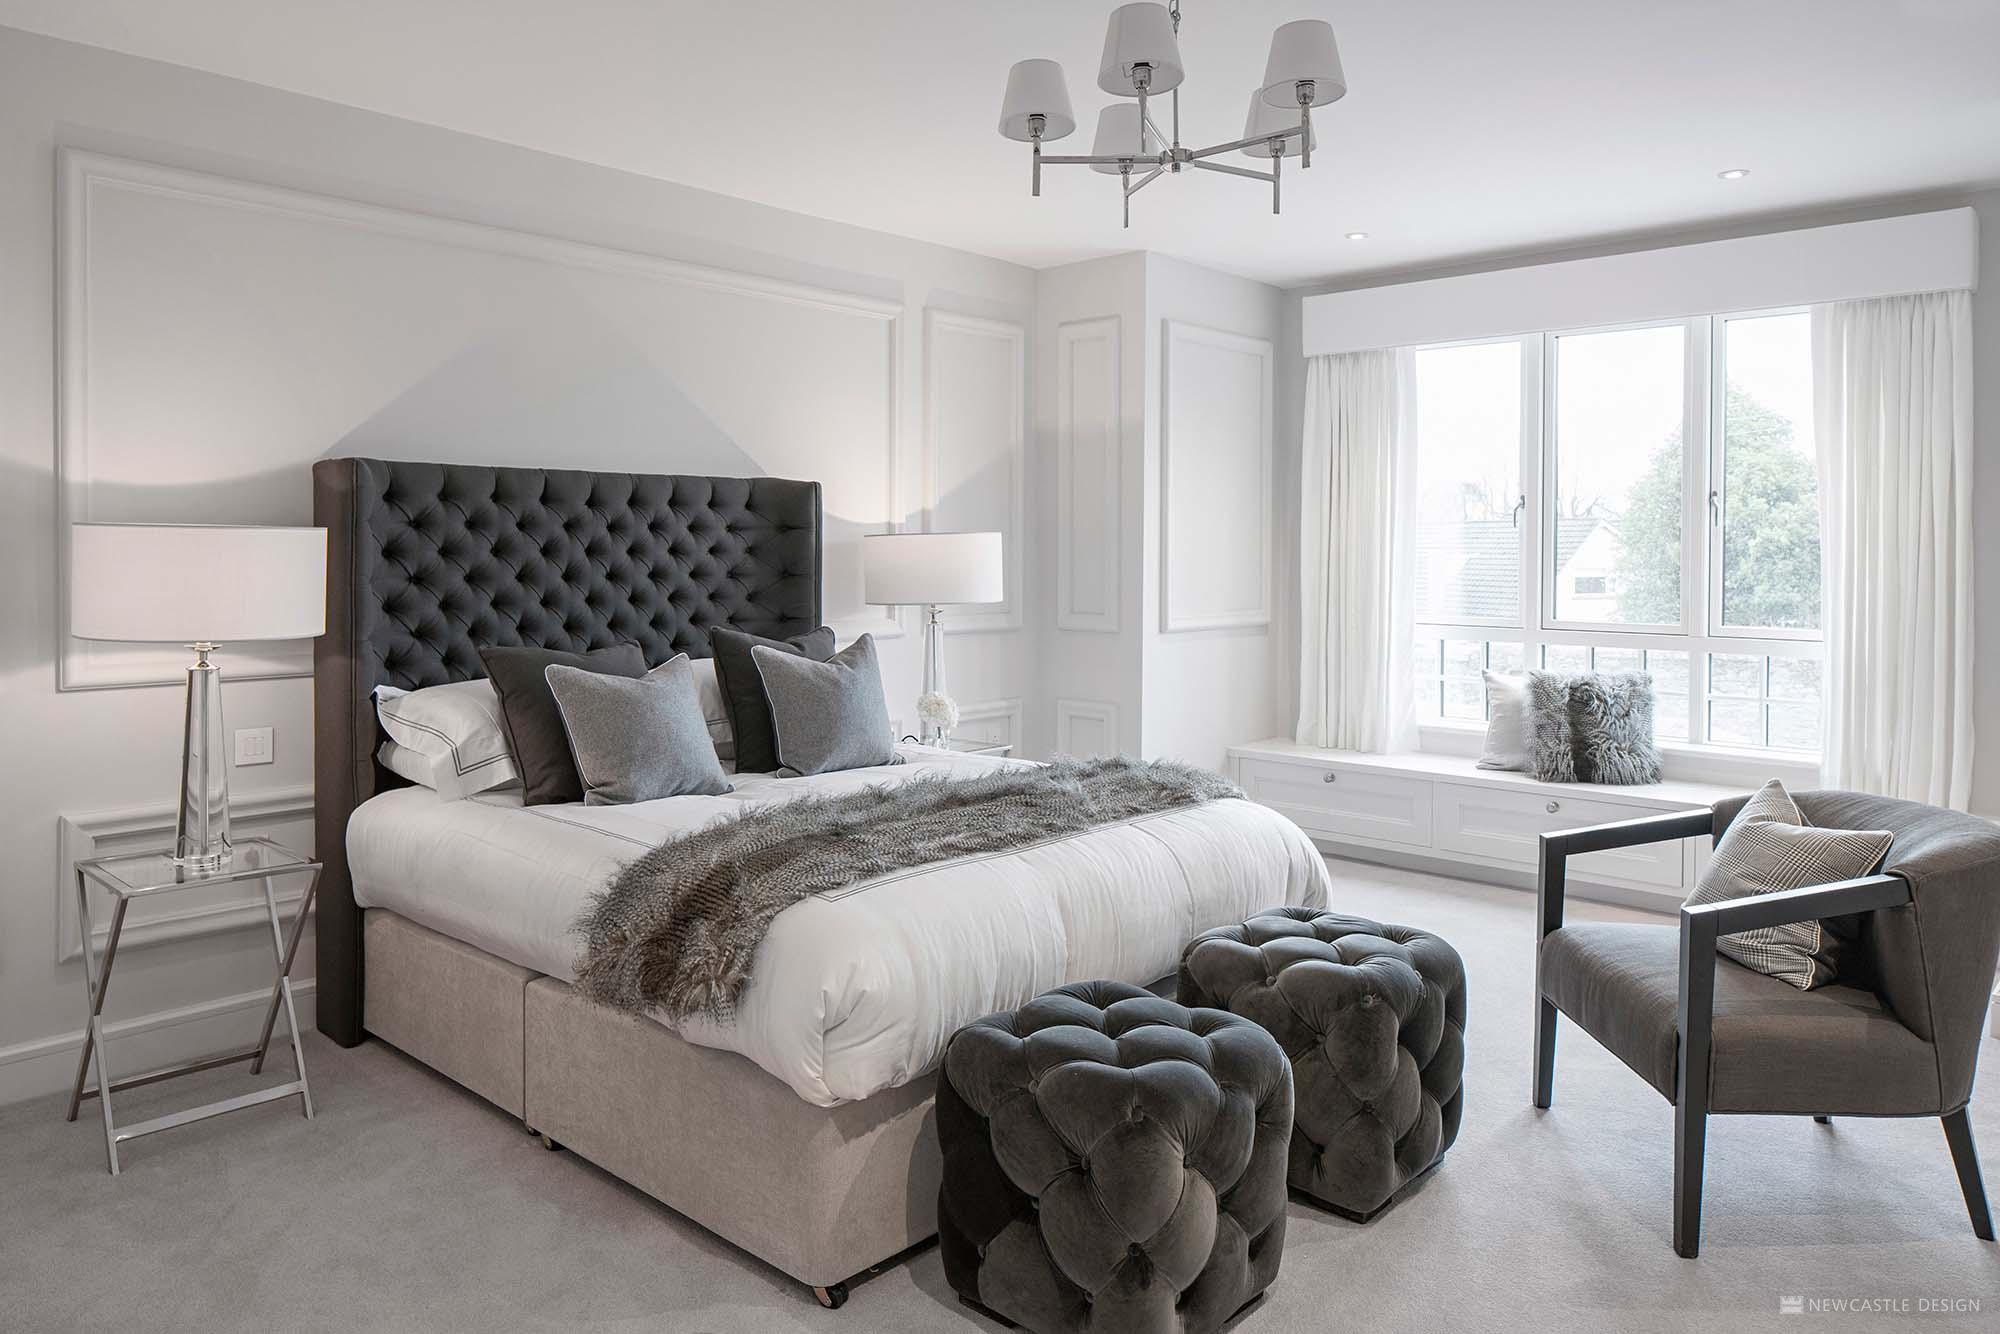 Fitted Wardrobes & Bedroom Furniture Dublin, Ireland on Room Decore  id=54353